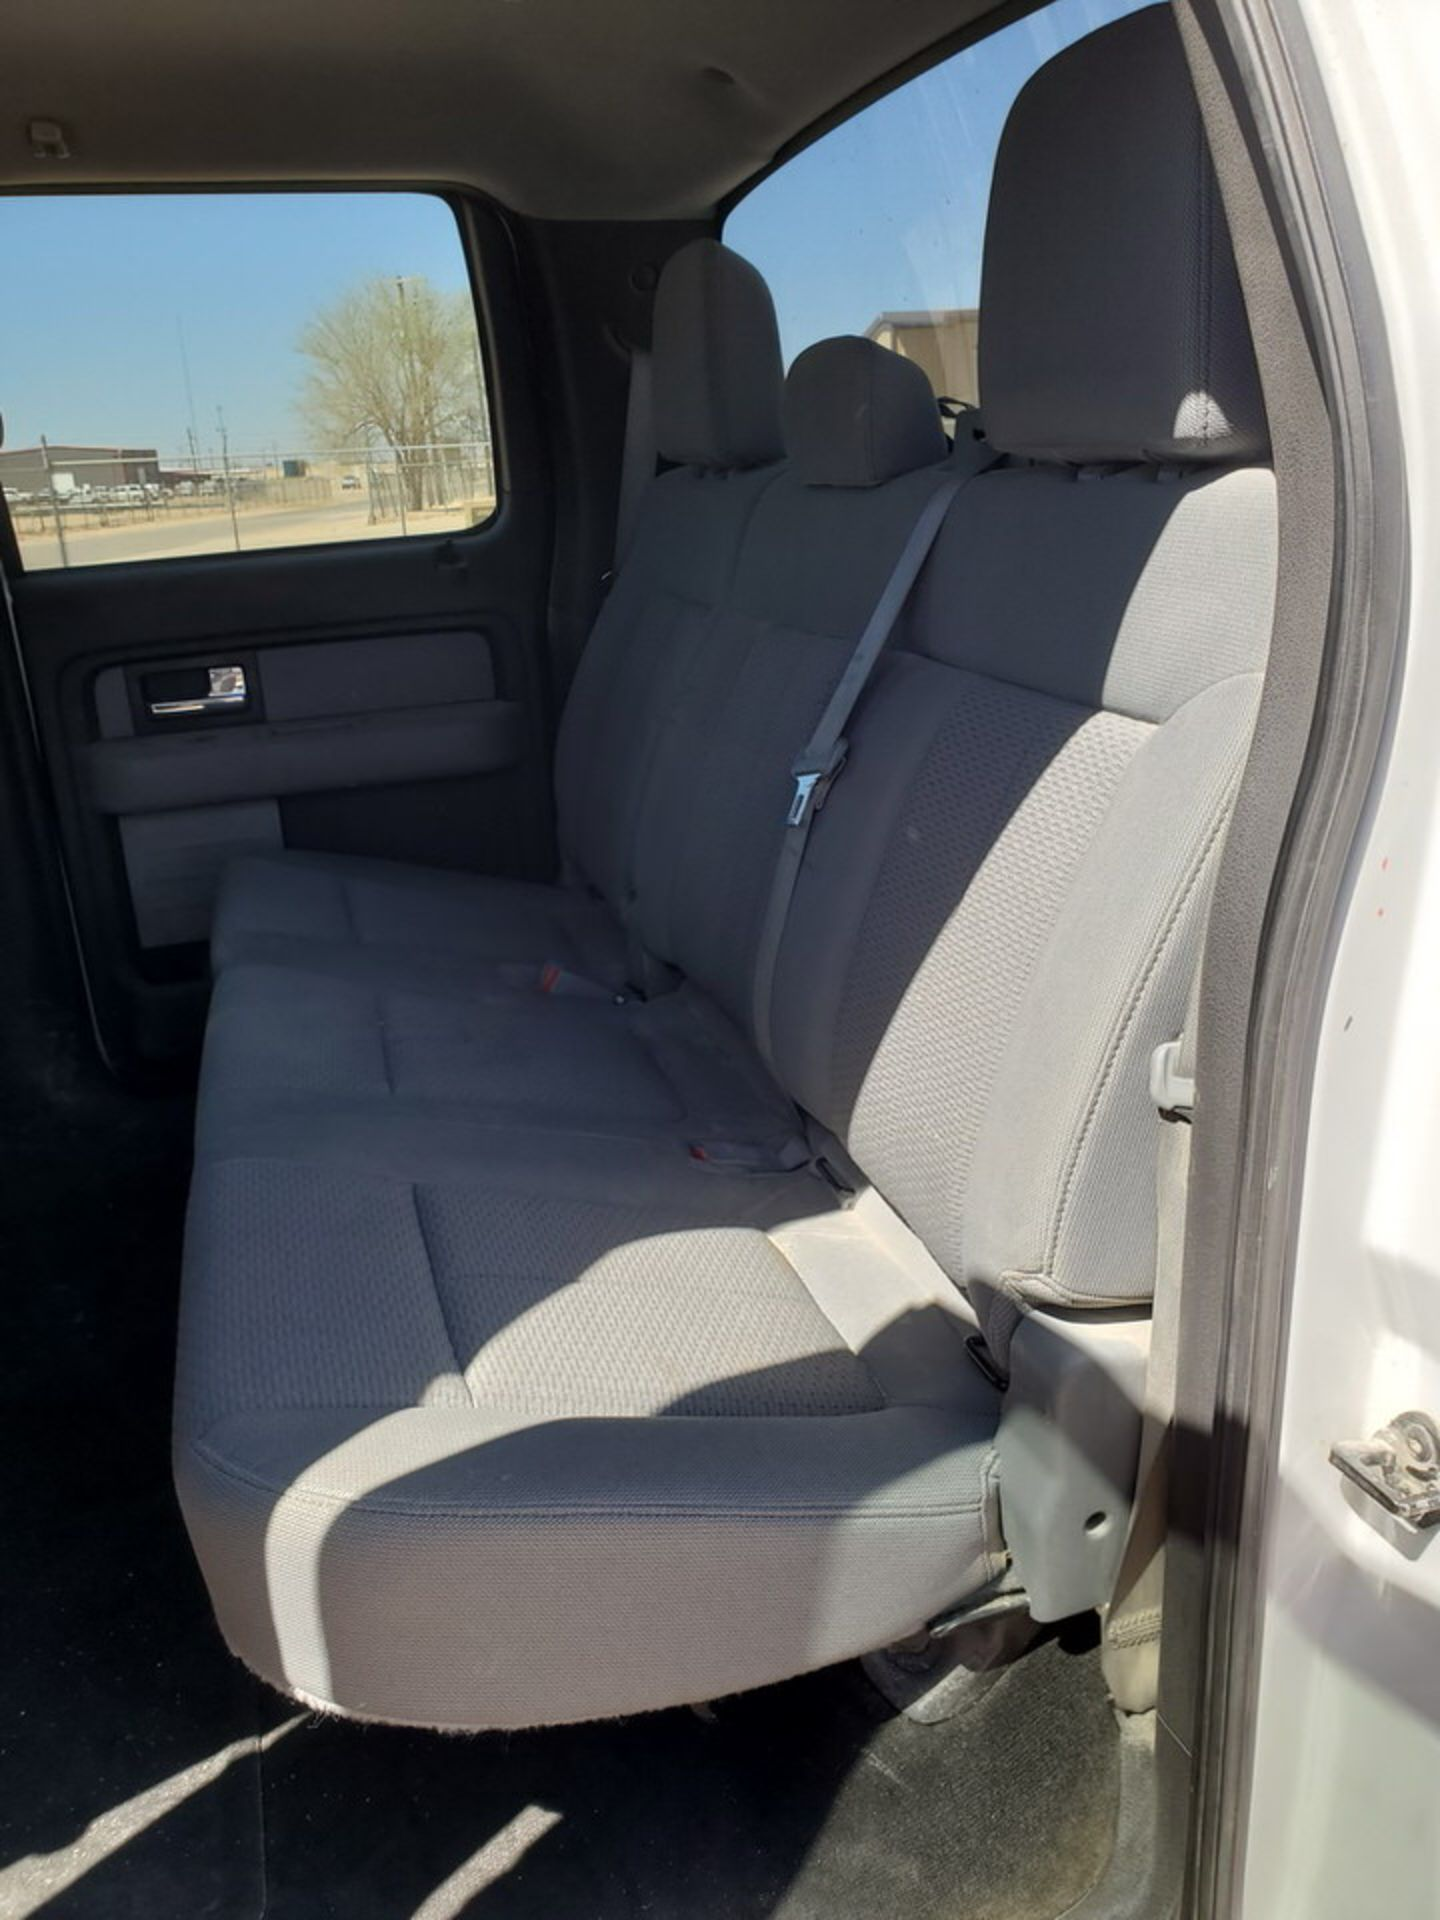 2013 Ford F150 Pickup Vin: 1FTFW1CF0DKF14097, TX Plates: CFT 3081, W/ 6.2L Engine - Image 9 of 19